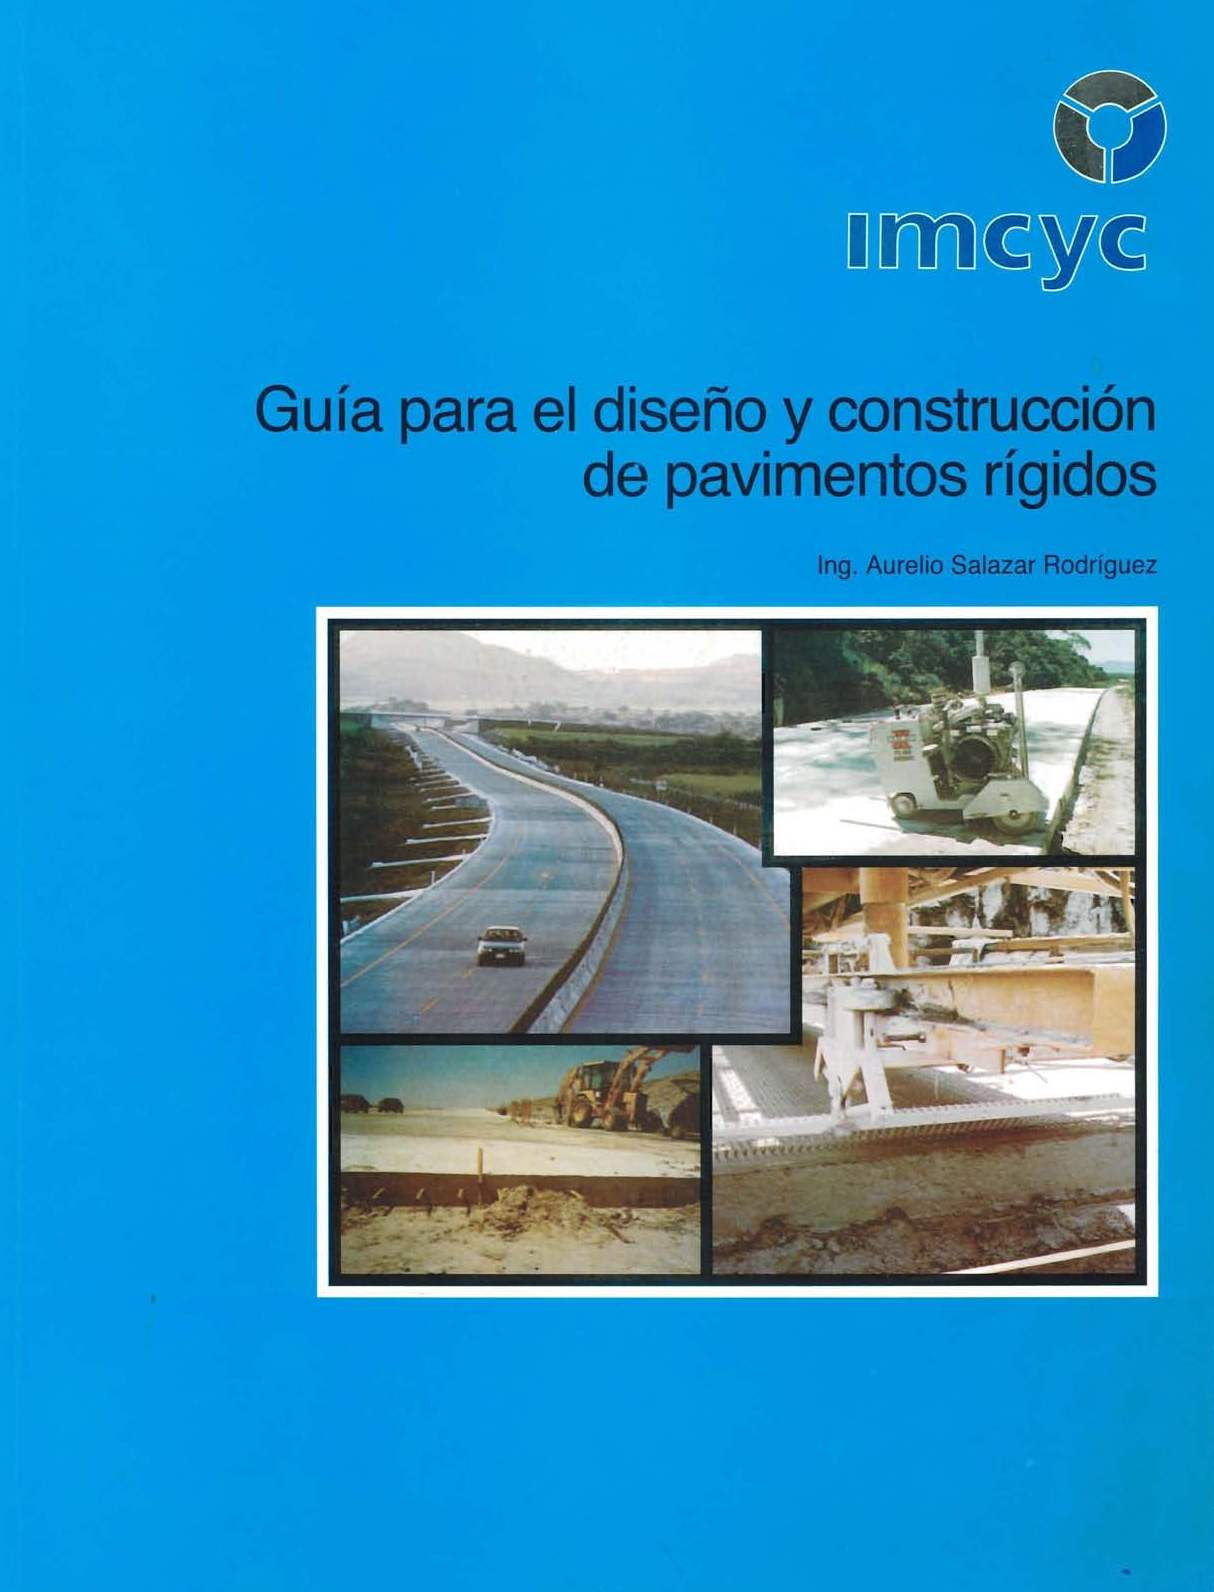 Ingenier a civil en el salvador gu a para el dise o y for Manual de diseno y construccion de albercas pdf